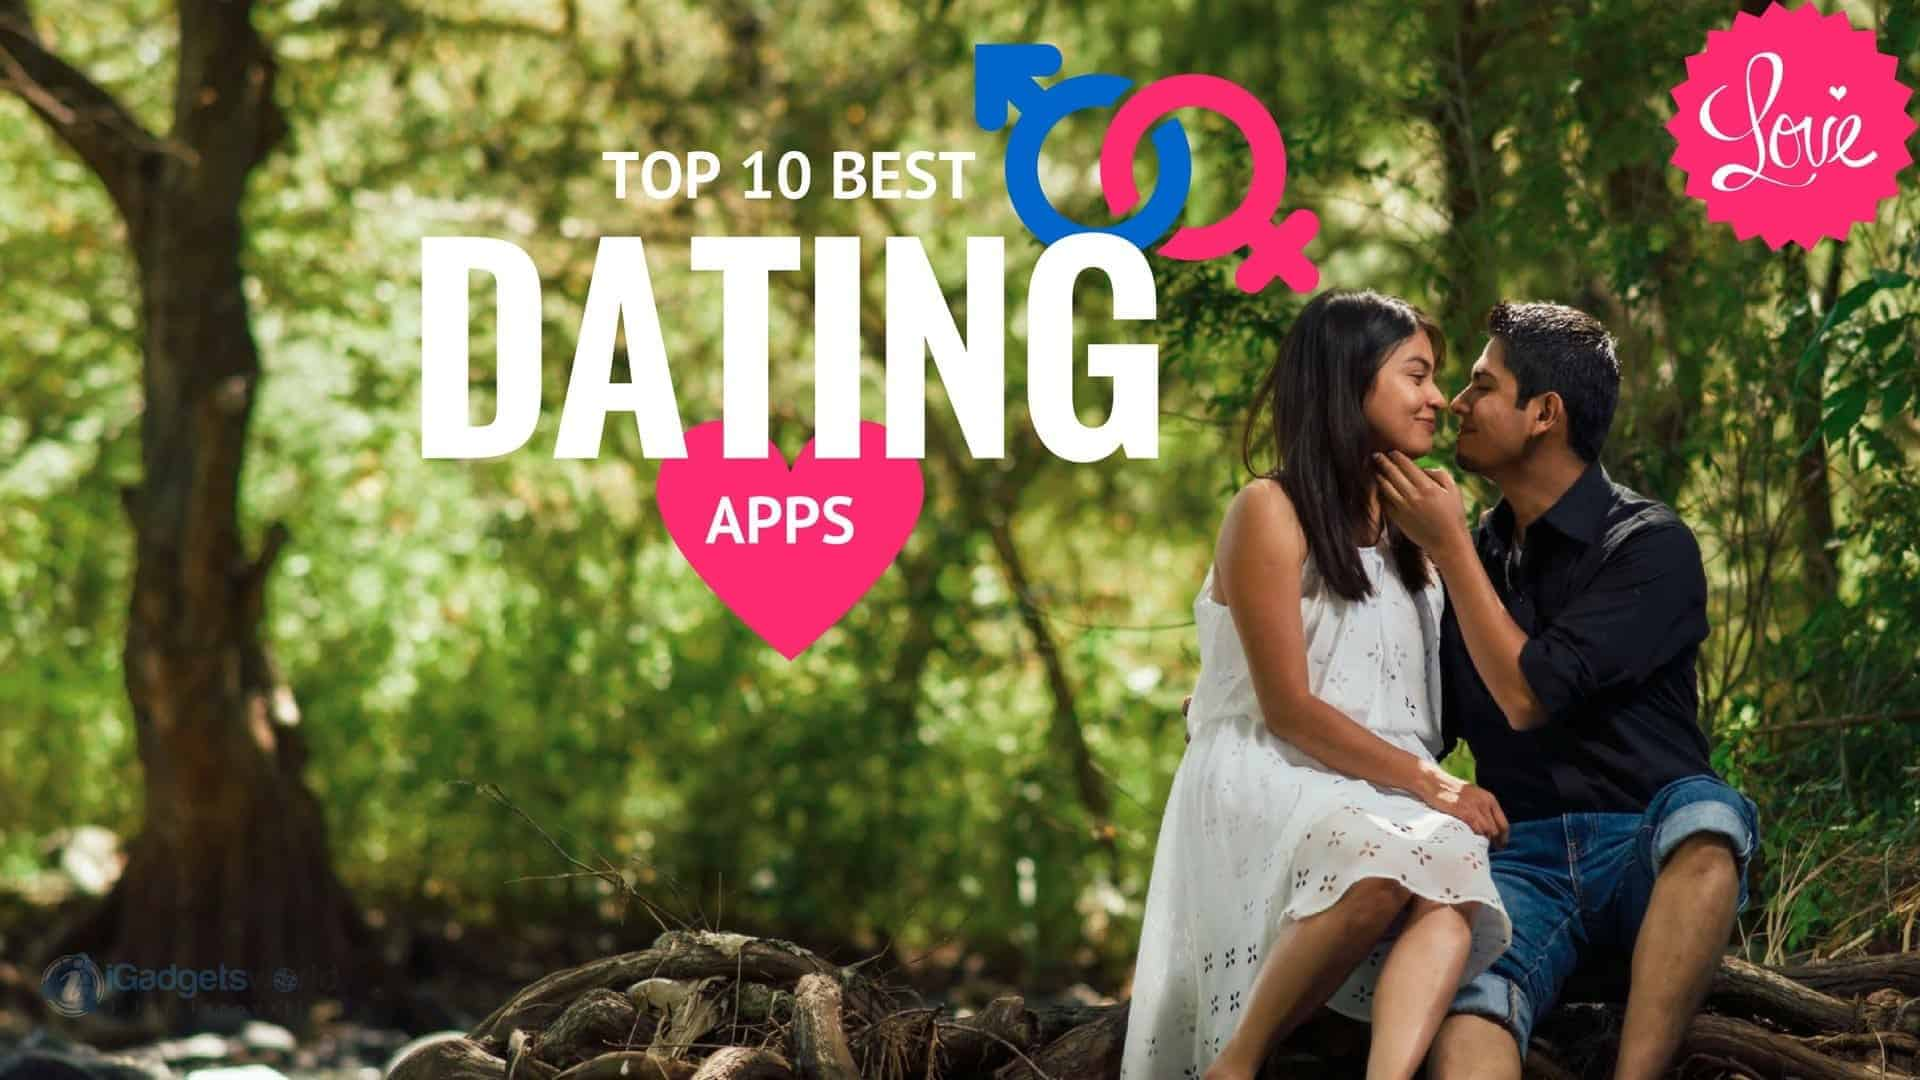 coolest dating apps News best dating apps: straight, gay or bi, find love whatever your orientation best dating apps: straight, gay or bi, find love whatever your orientation.